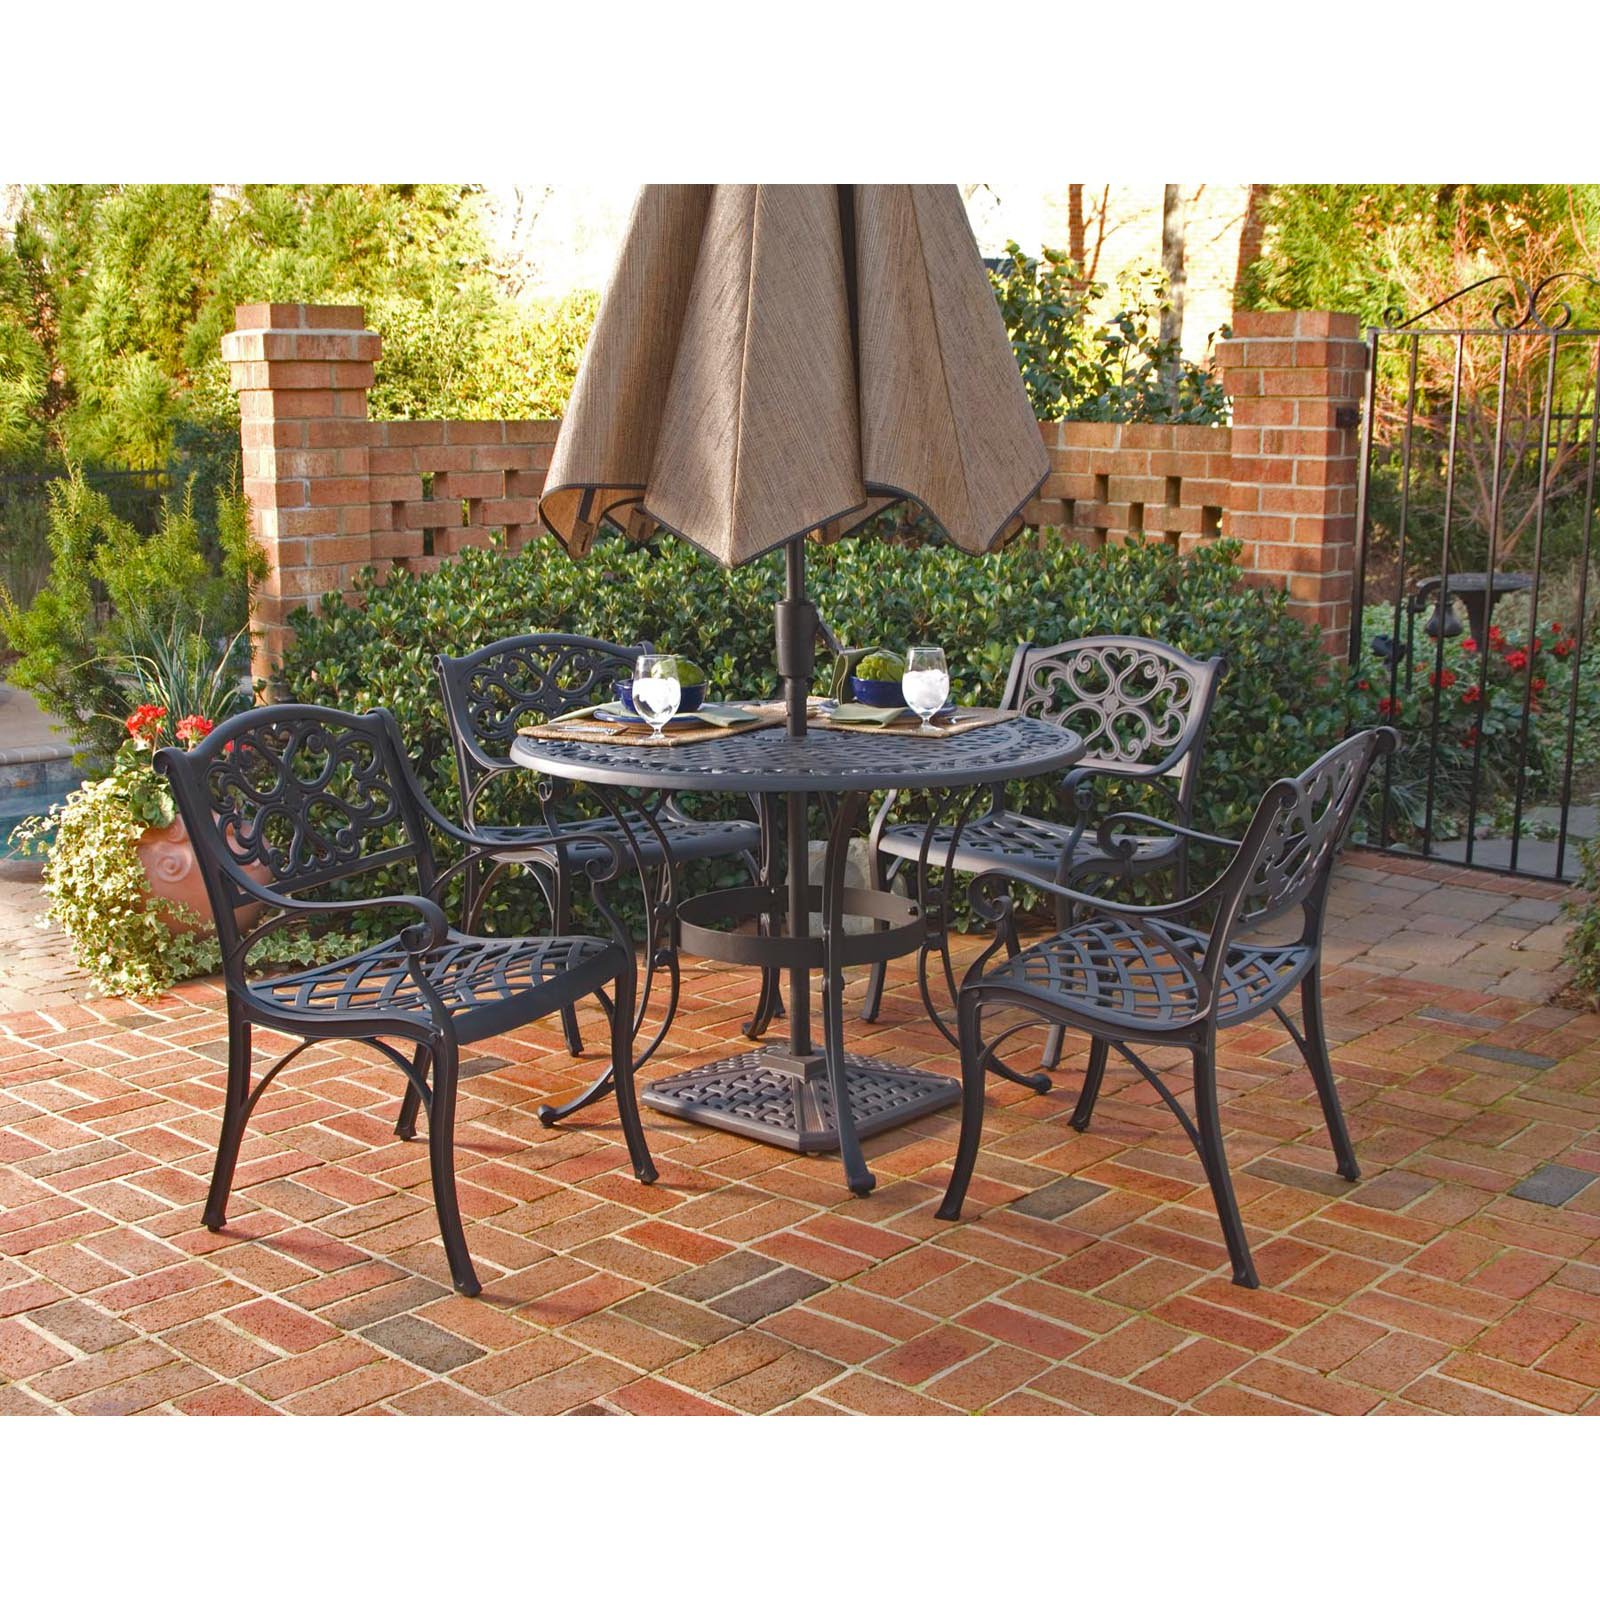 "Home Styles Biscayne 5 Piece 48"" Round Dining Set Multiple"